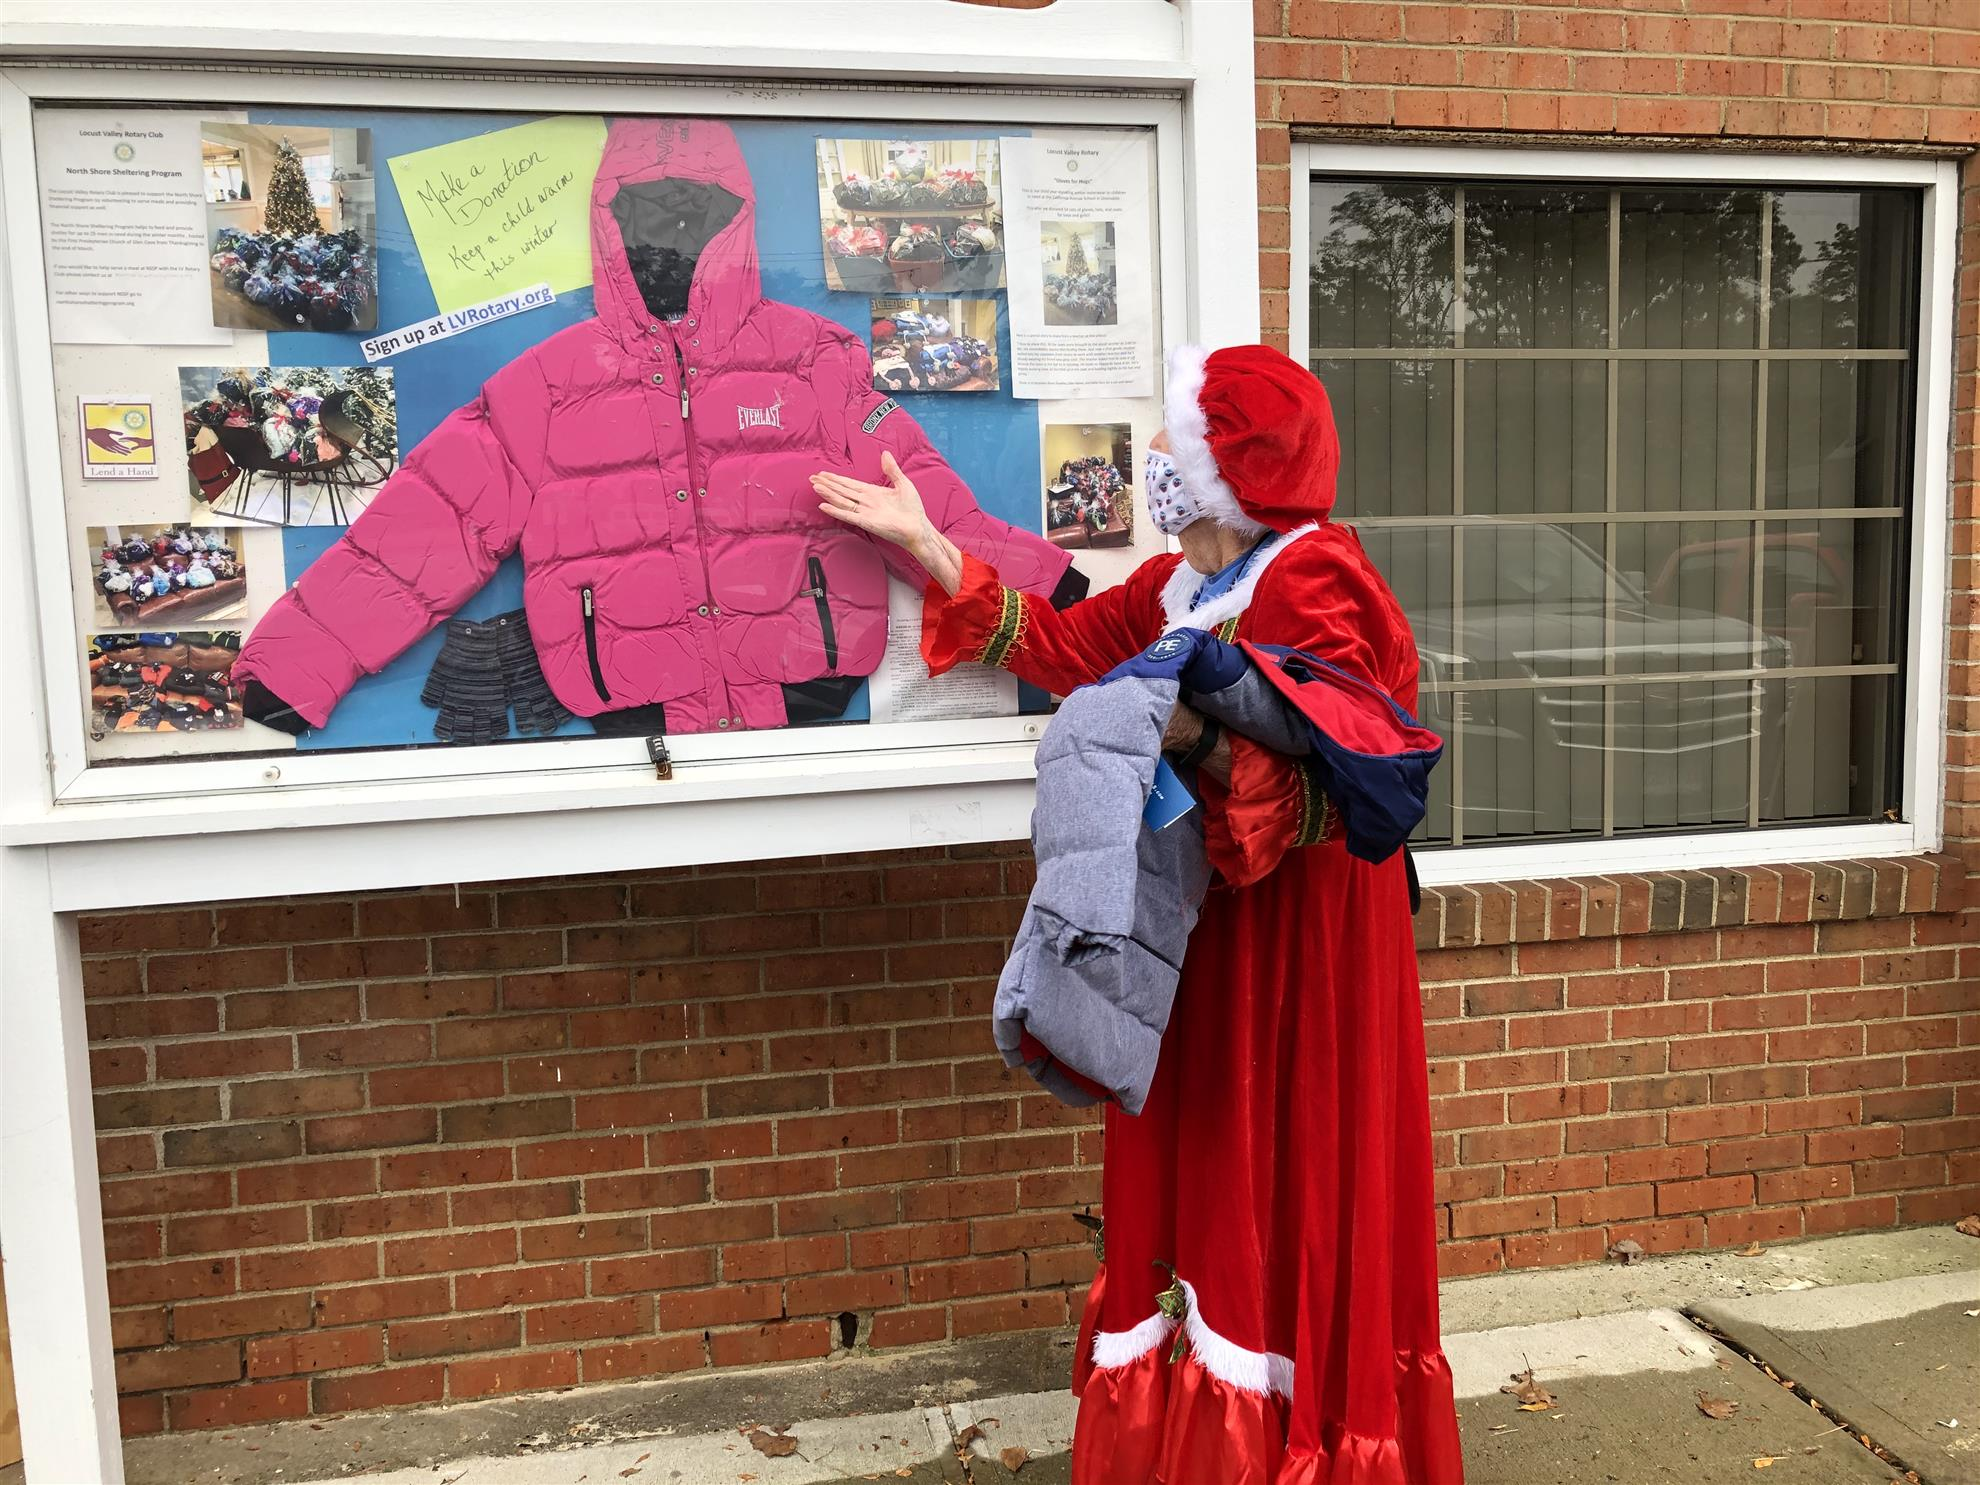 Mrs. Claus looks at the Girl's Coat in the Rotary Information Kiosk